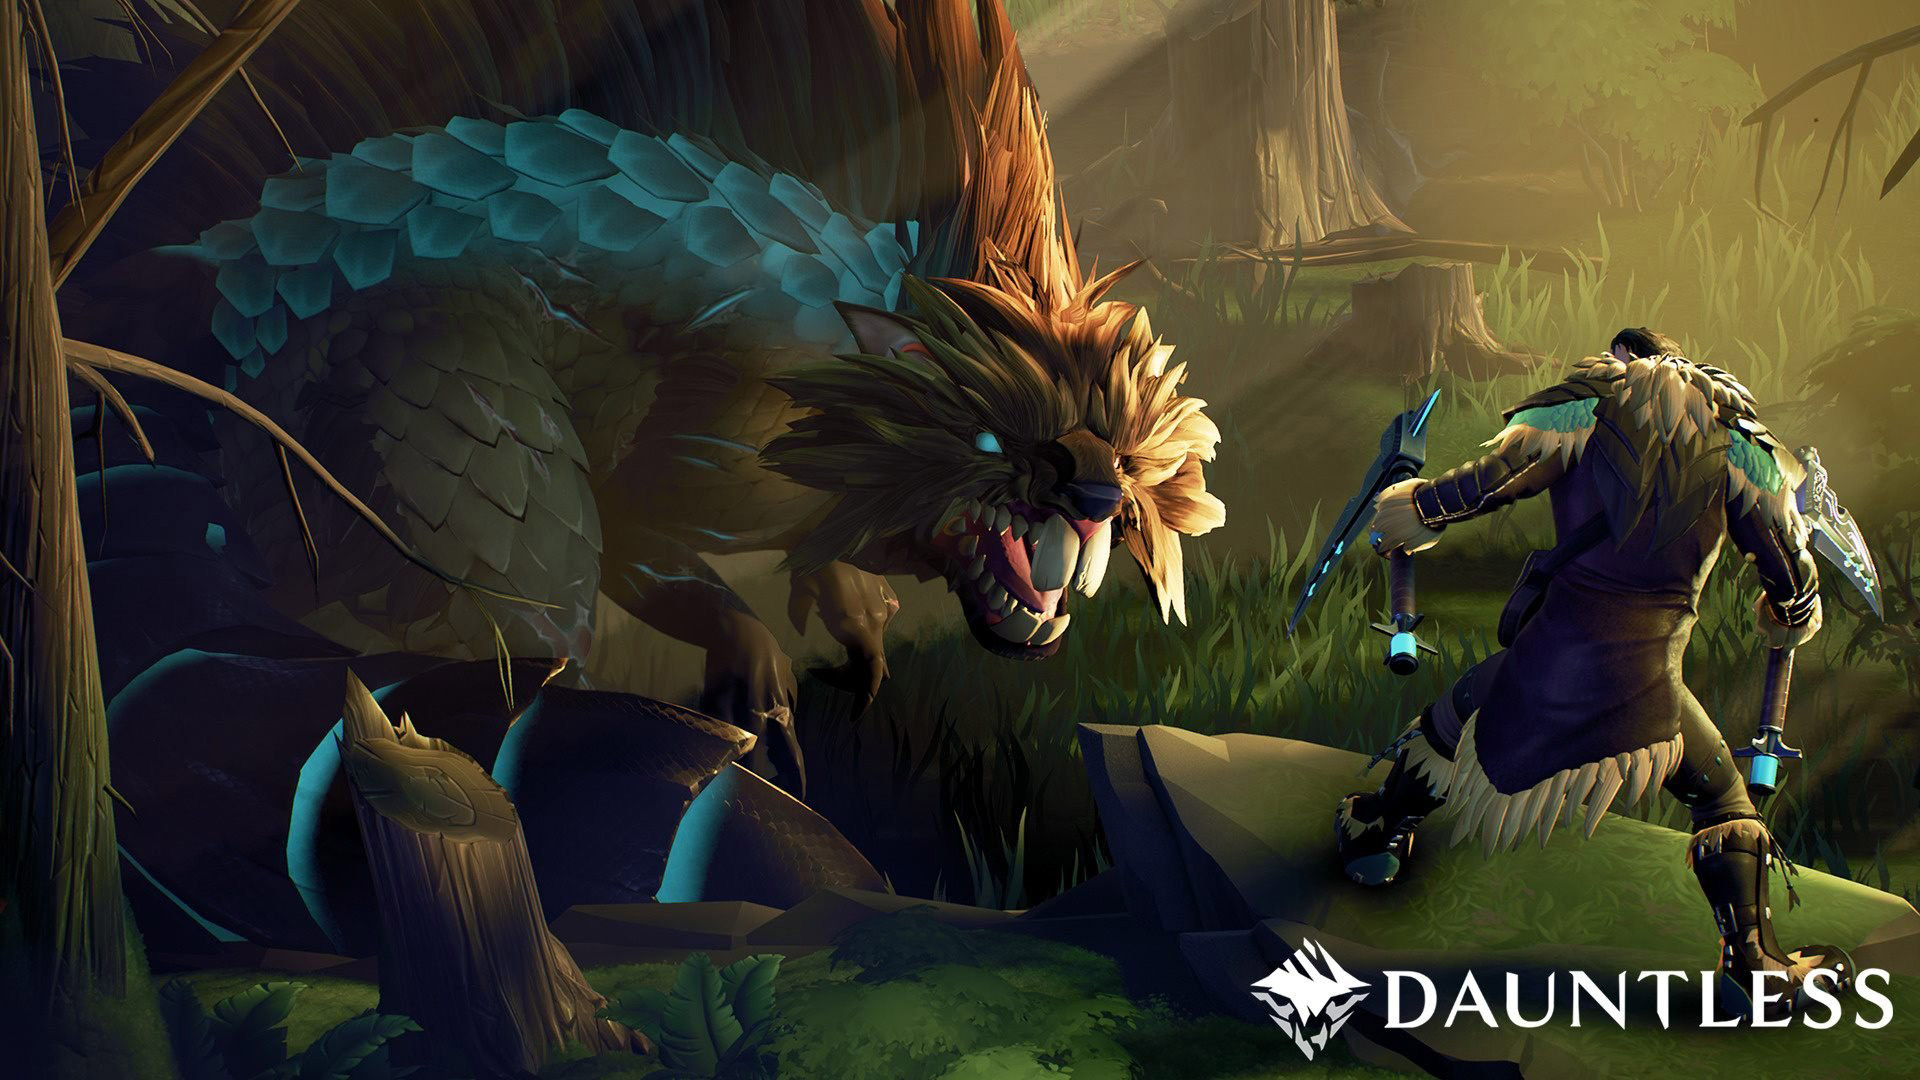 Dauntless Wallpaper in 1920x1080